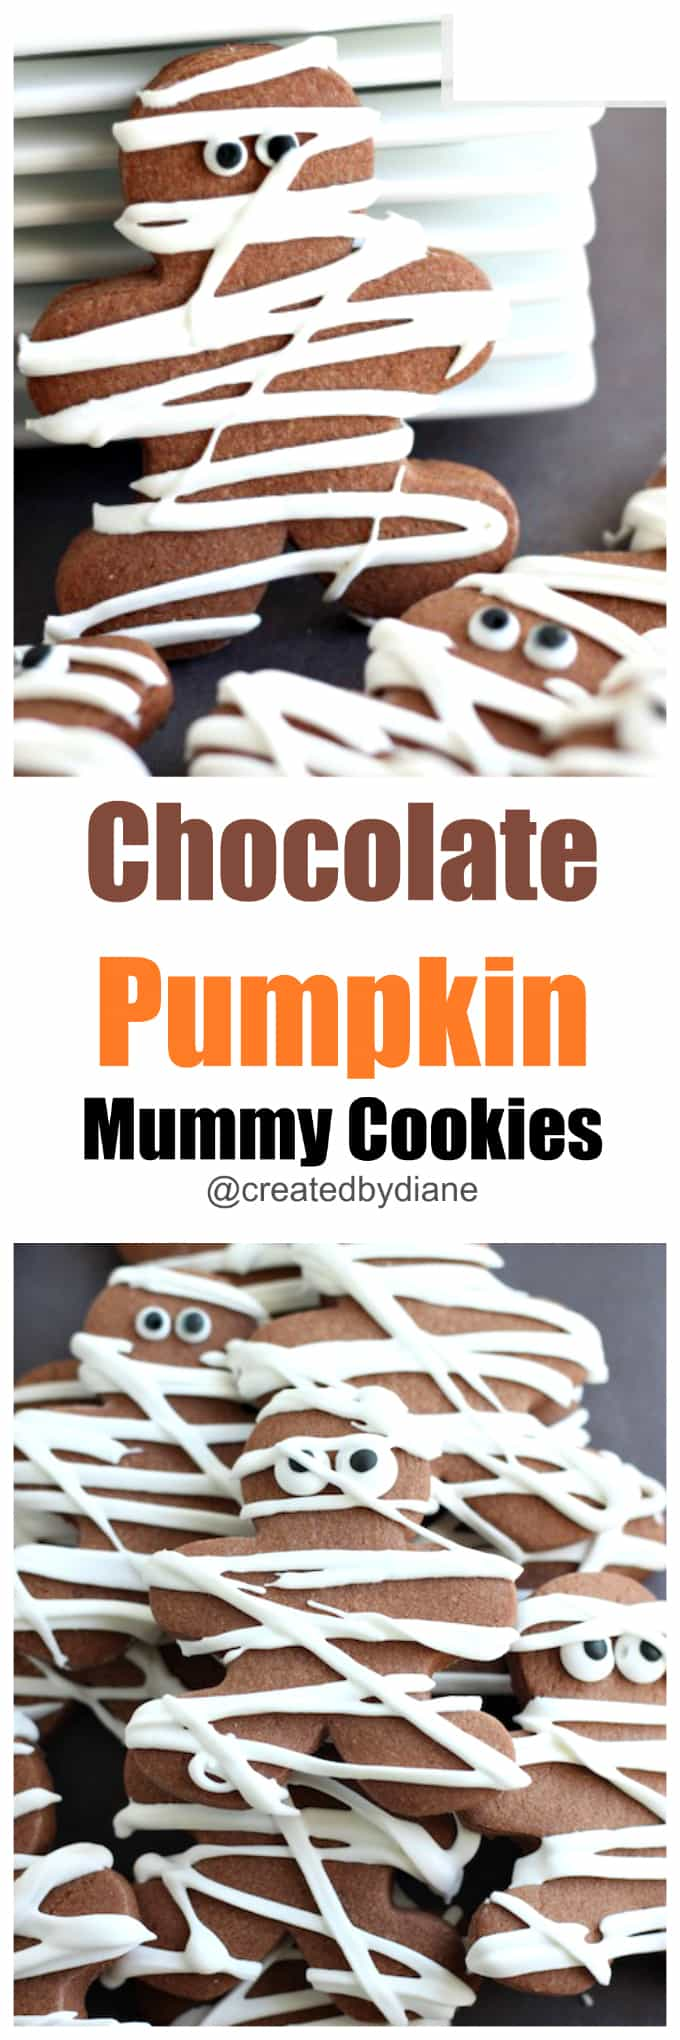 chocolate pumpkin mummy cookies @createdbydiane